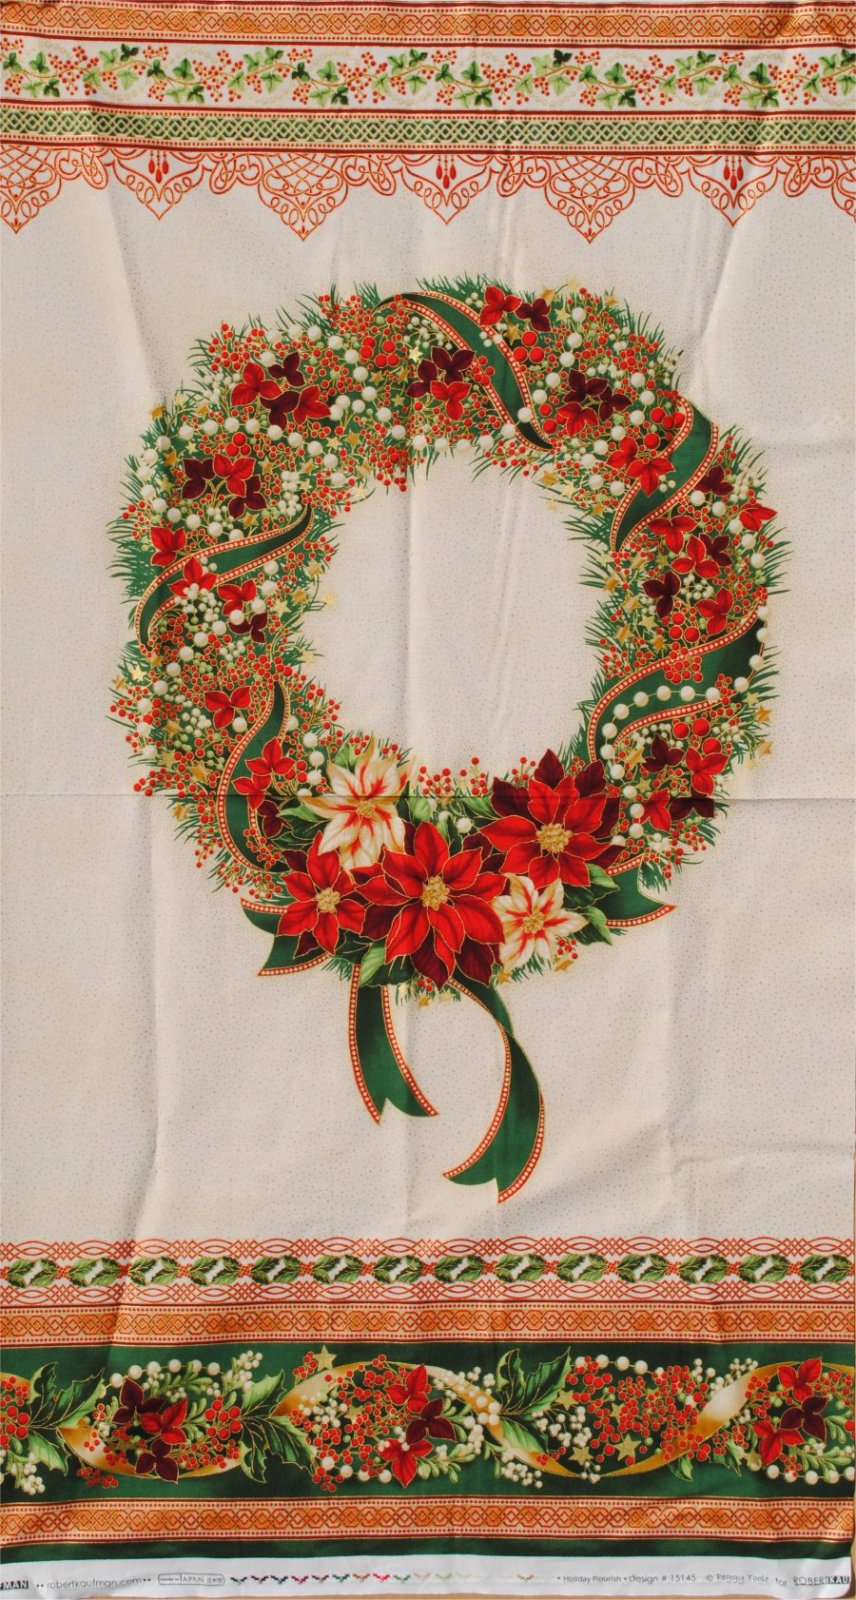 HOLIDAY FLOURISH 8 PANEL BY PEGGY TOOLE